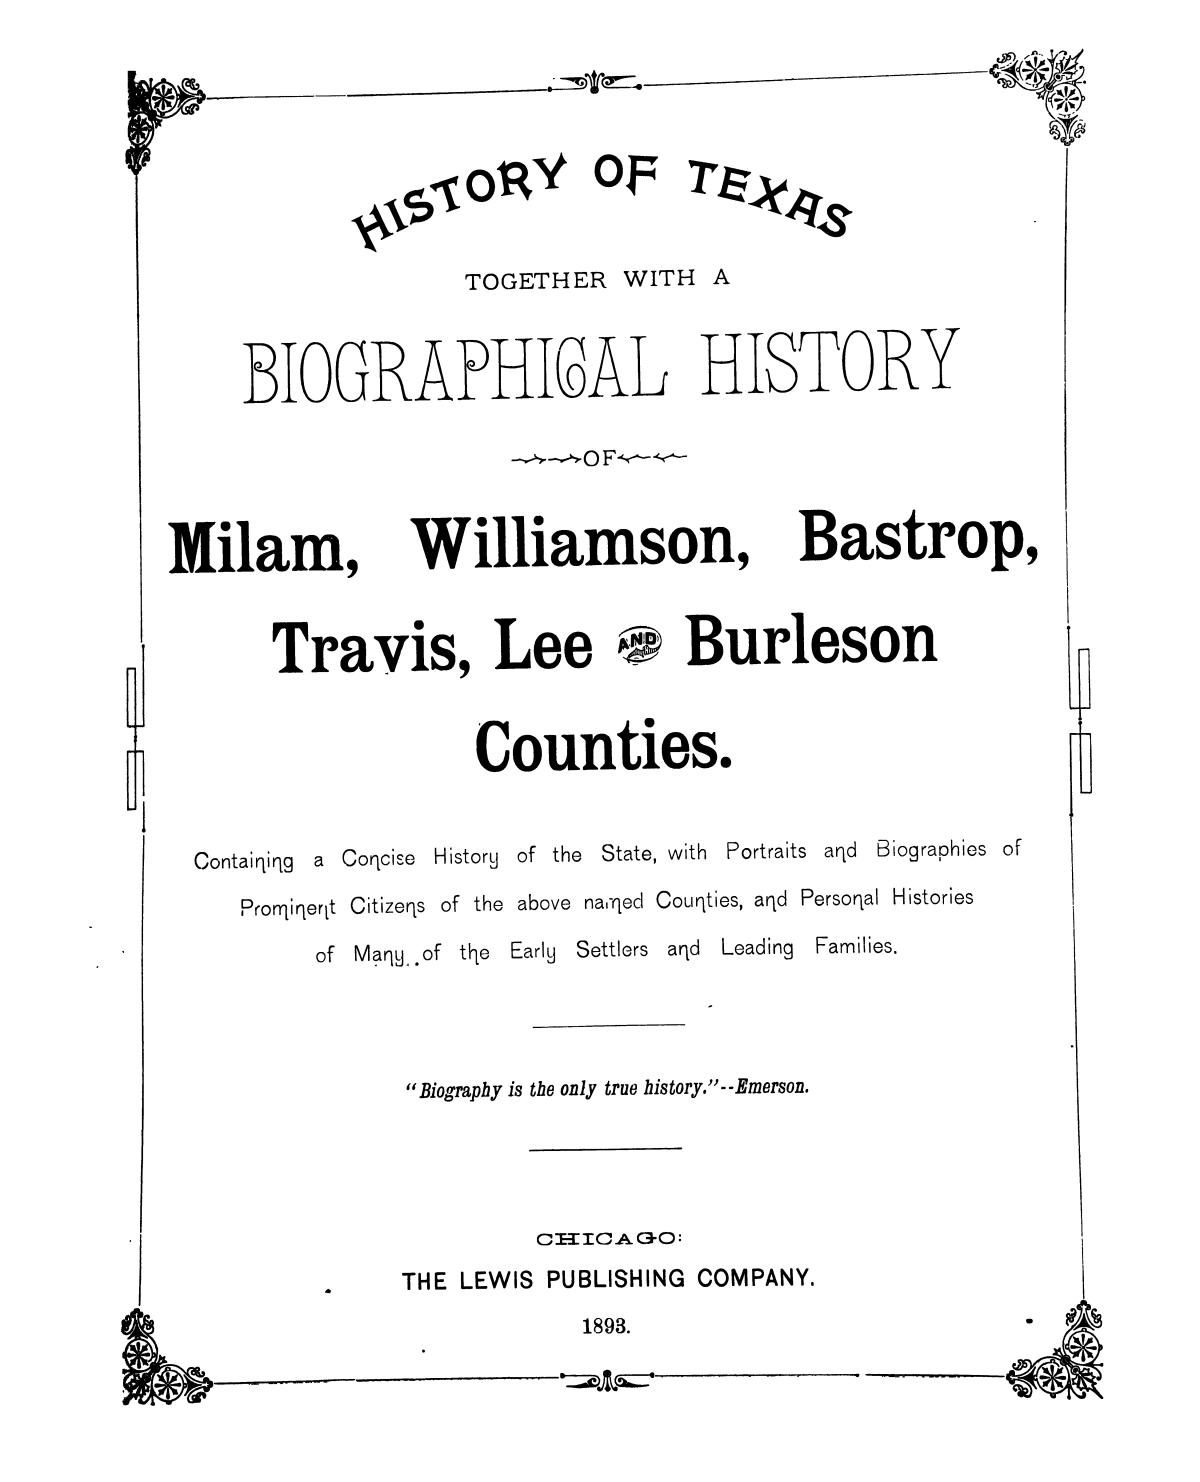 History of Texas, together with a biographical history of Milam, Williamson, Bastrop, Travis, Lee and Burleson counties : containing a concise history of the state, with portraits and biographies of prominent citizens of the above named counties, and personal histories of many of the early settlers and leading families                                                                                                      1